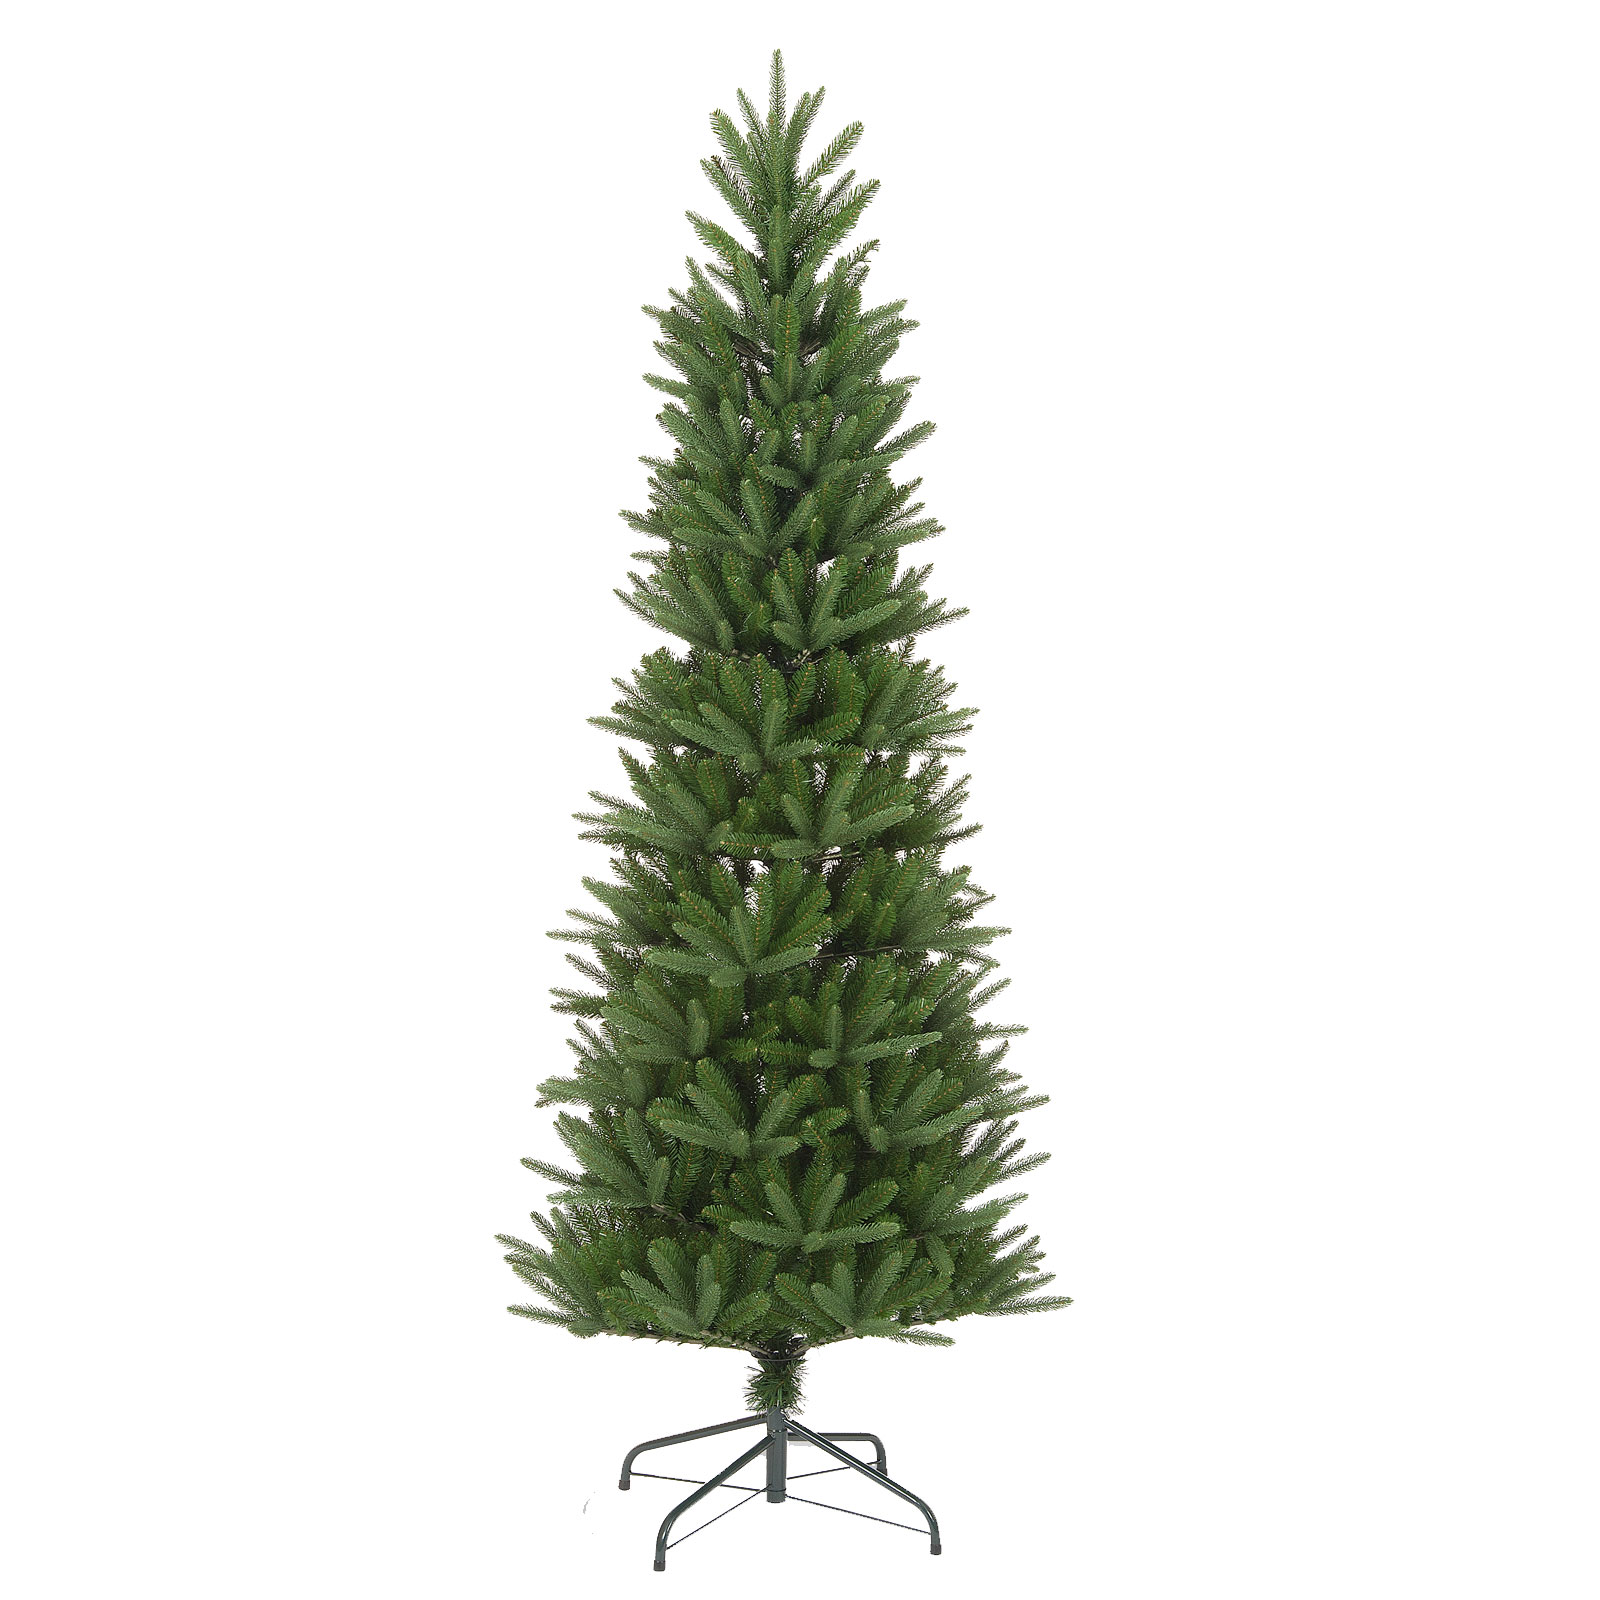 088be8f2bee0 SALE on Boxing Day Trees. Now Available our Best Price on Boxing Day ...